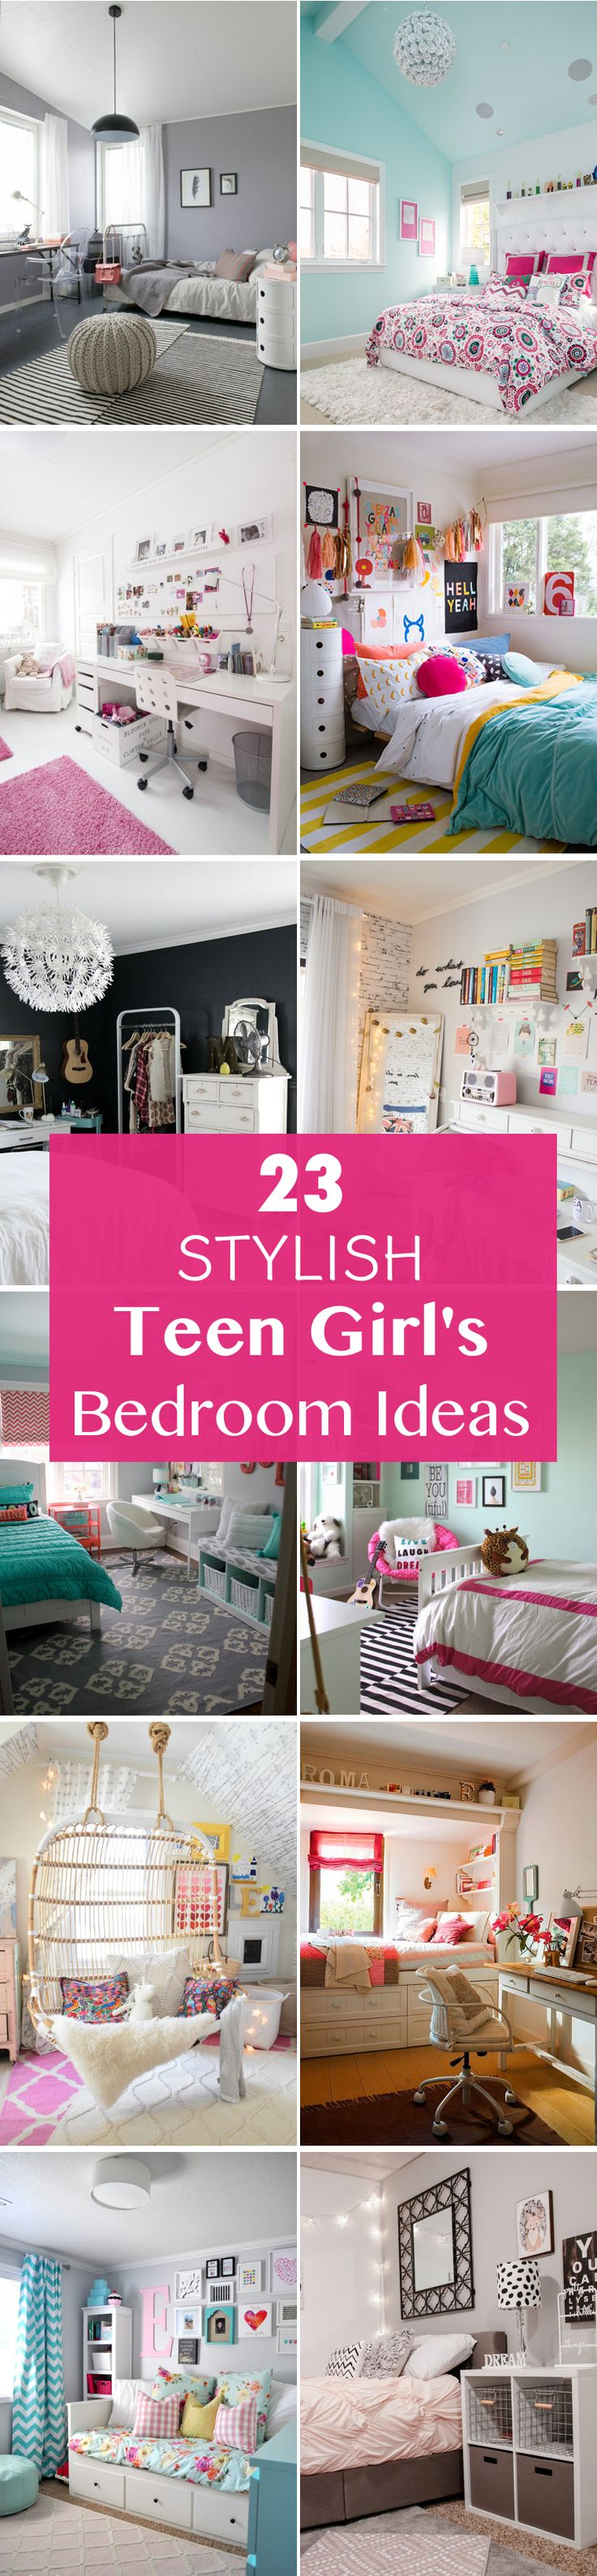 23 Stylish Teen Girl S Bedroom Ideas